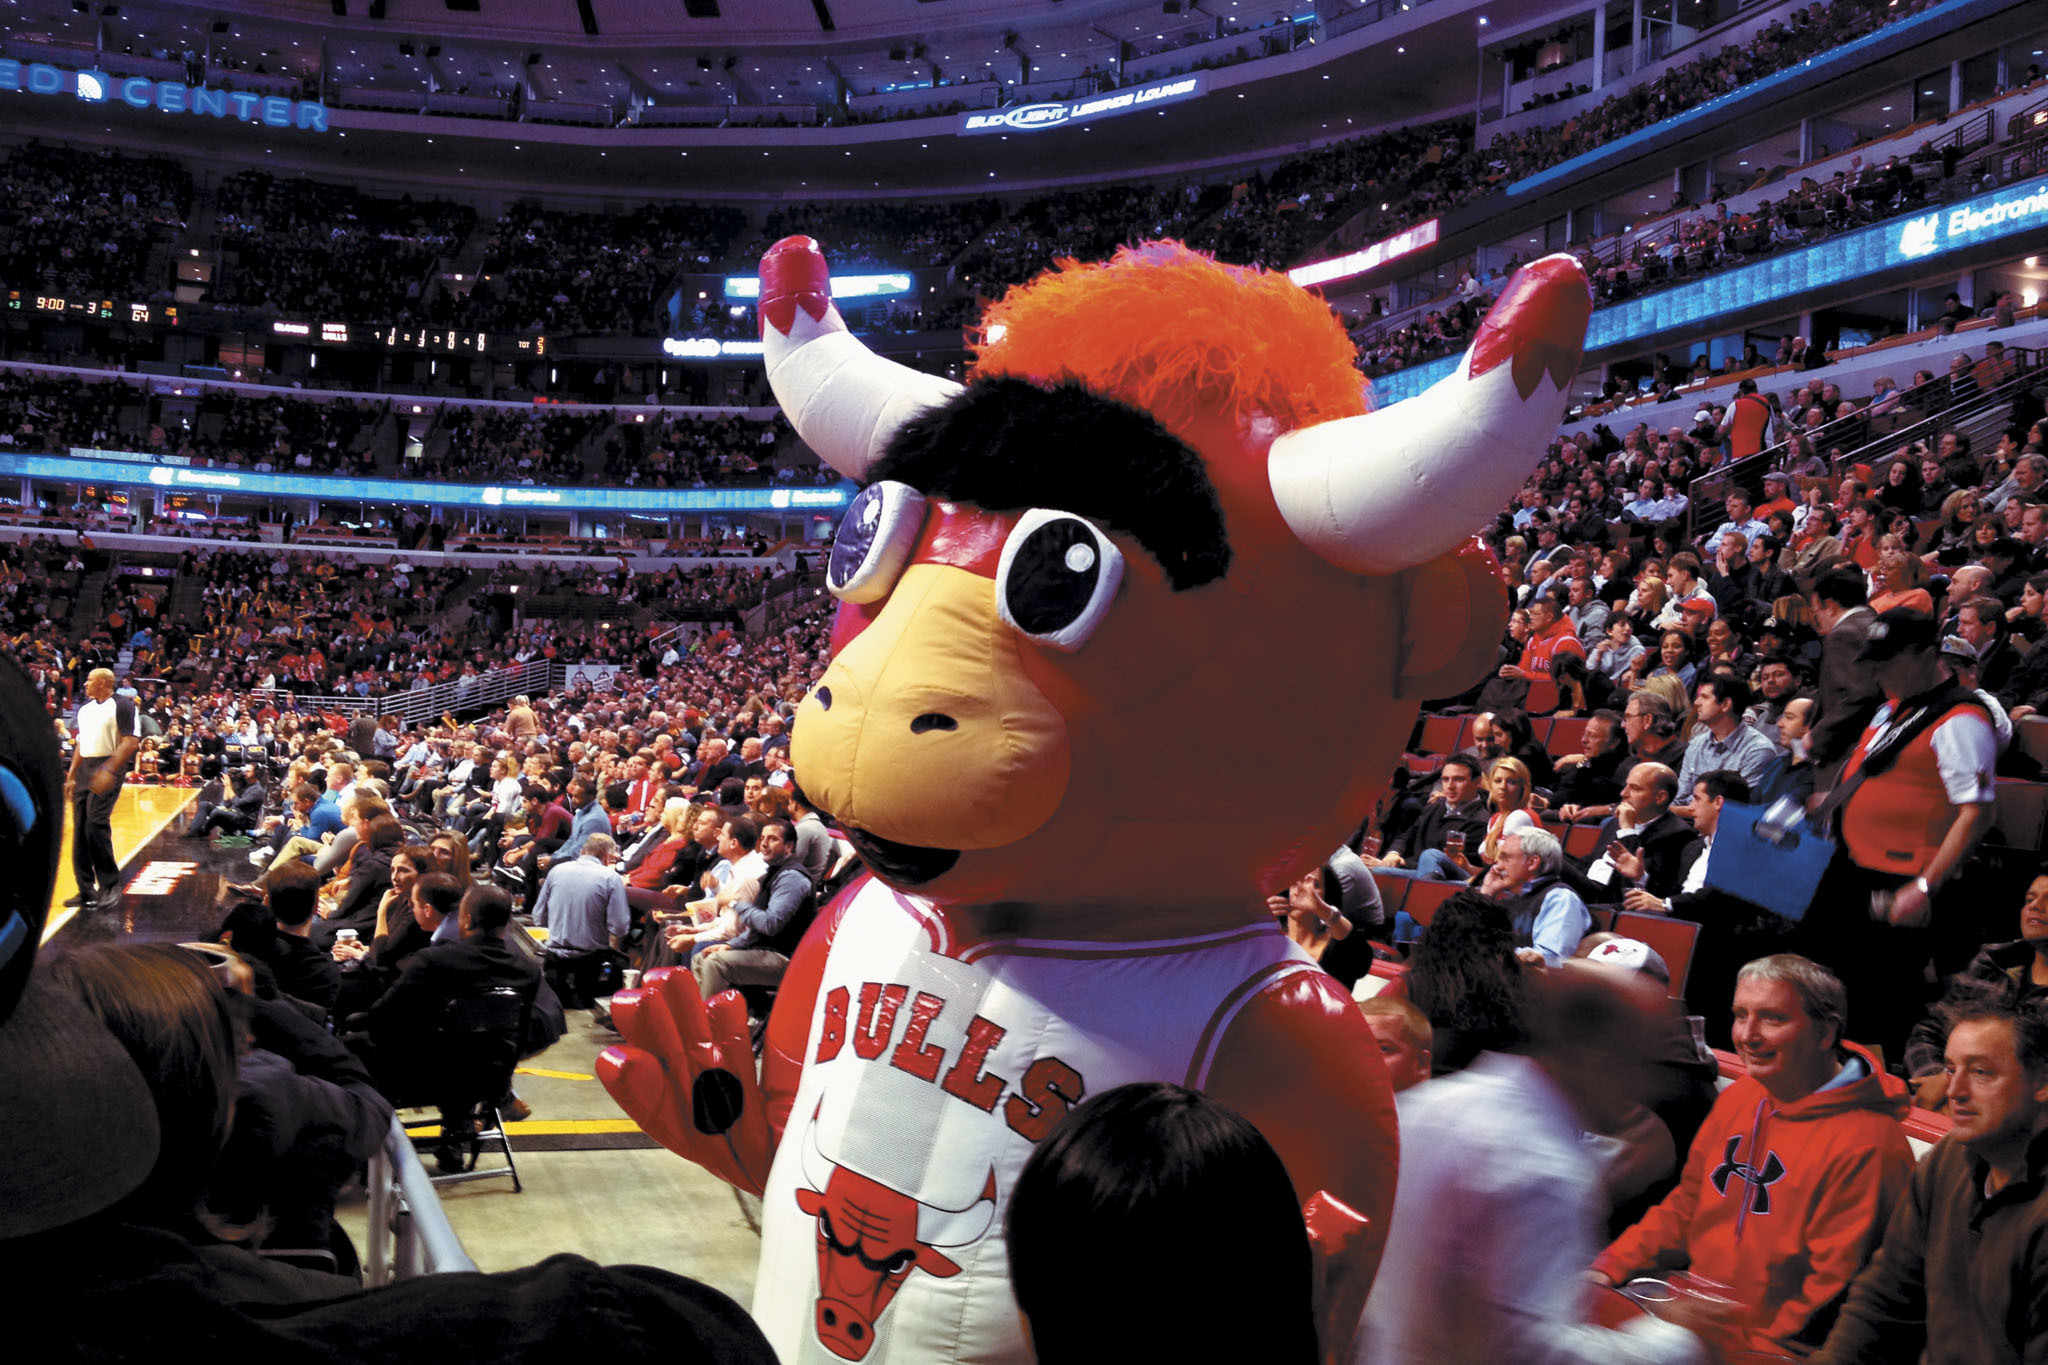 Catch a Bulls game at United Center.